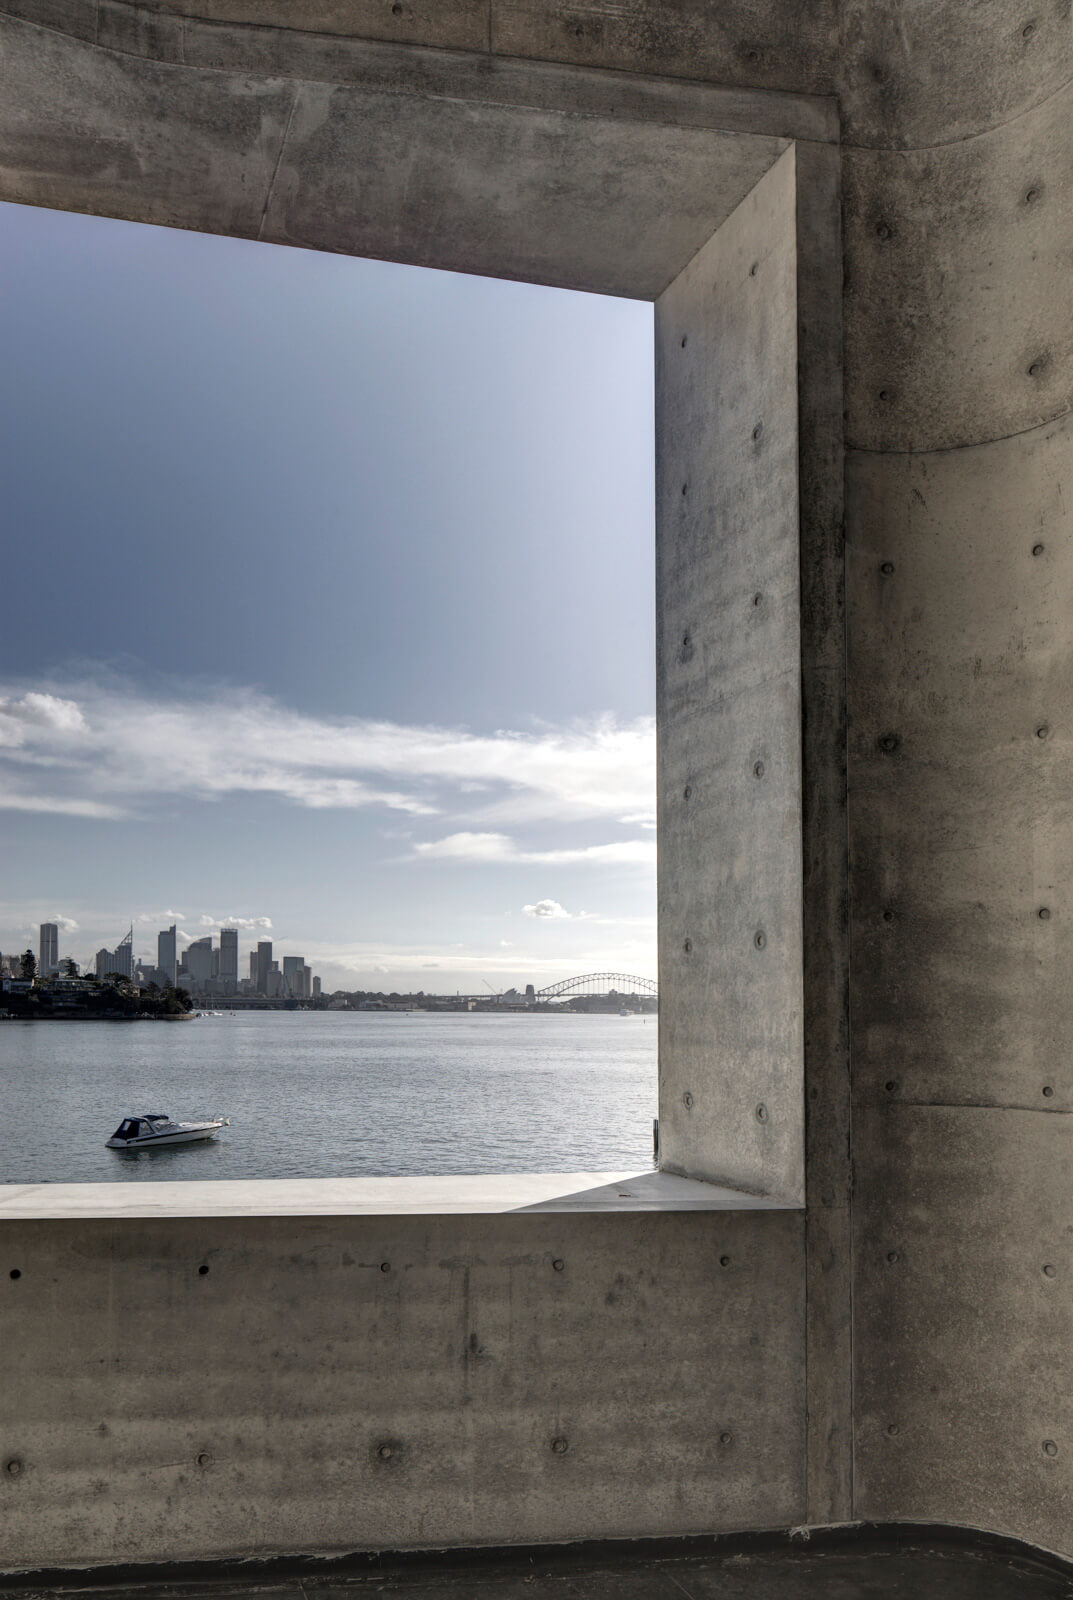 The off-form concrete appearance like a water-softened pebble | House Taurus | Durbach Block Jaggers Architects | STIRworld